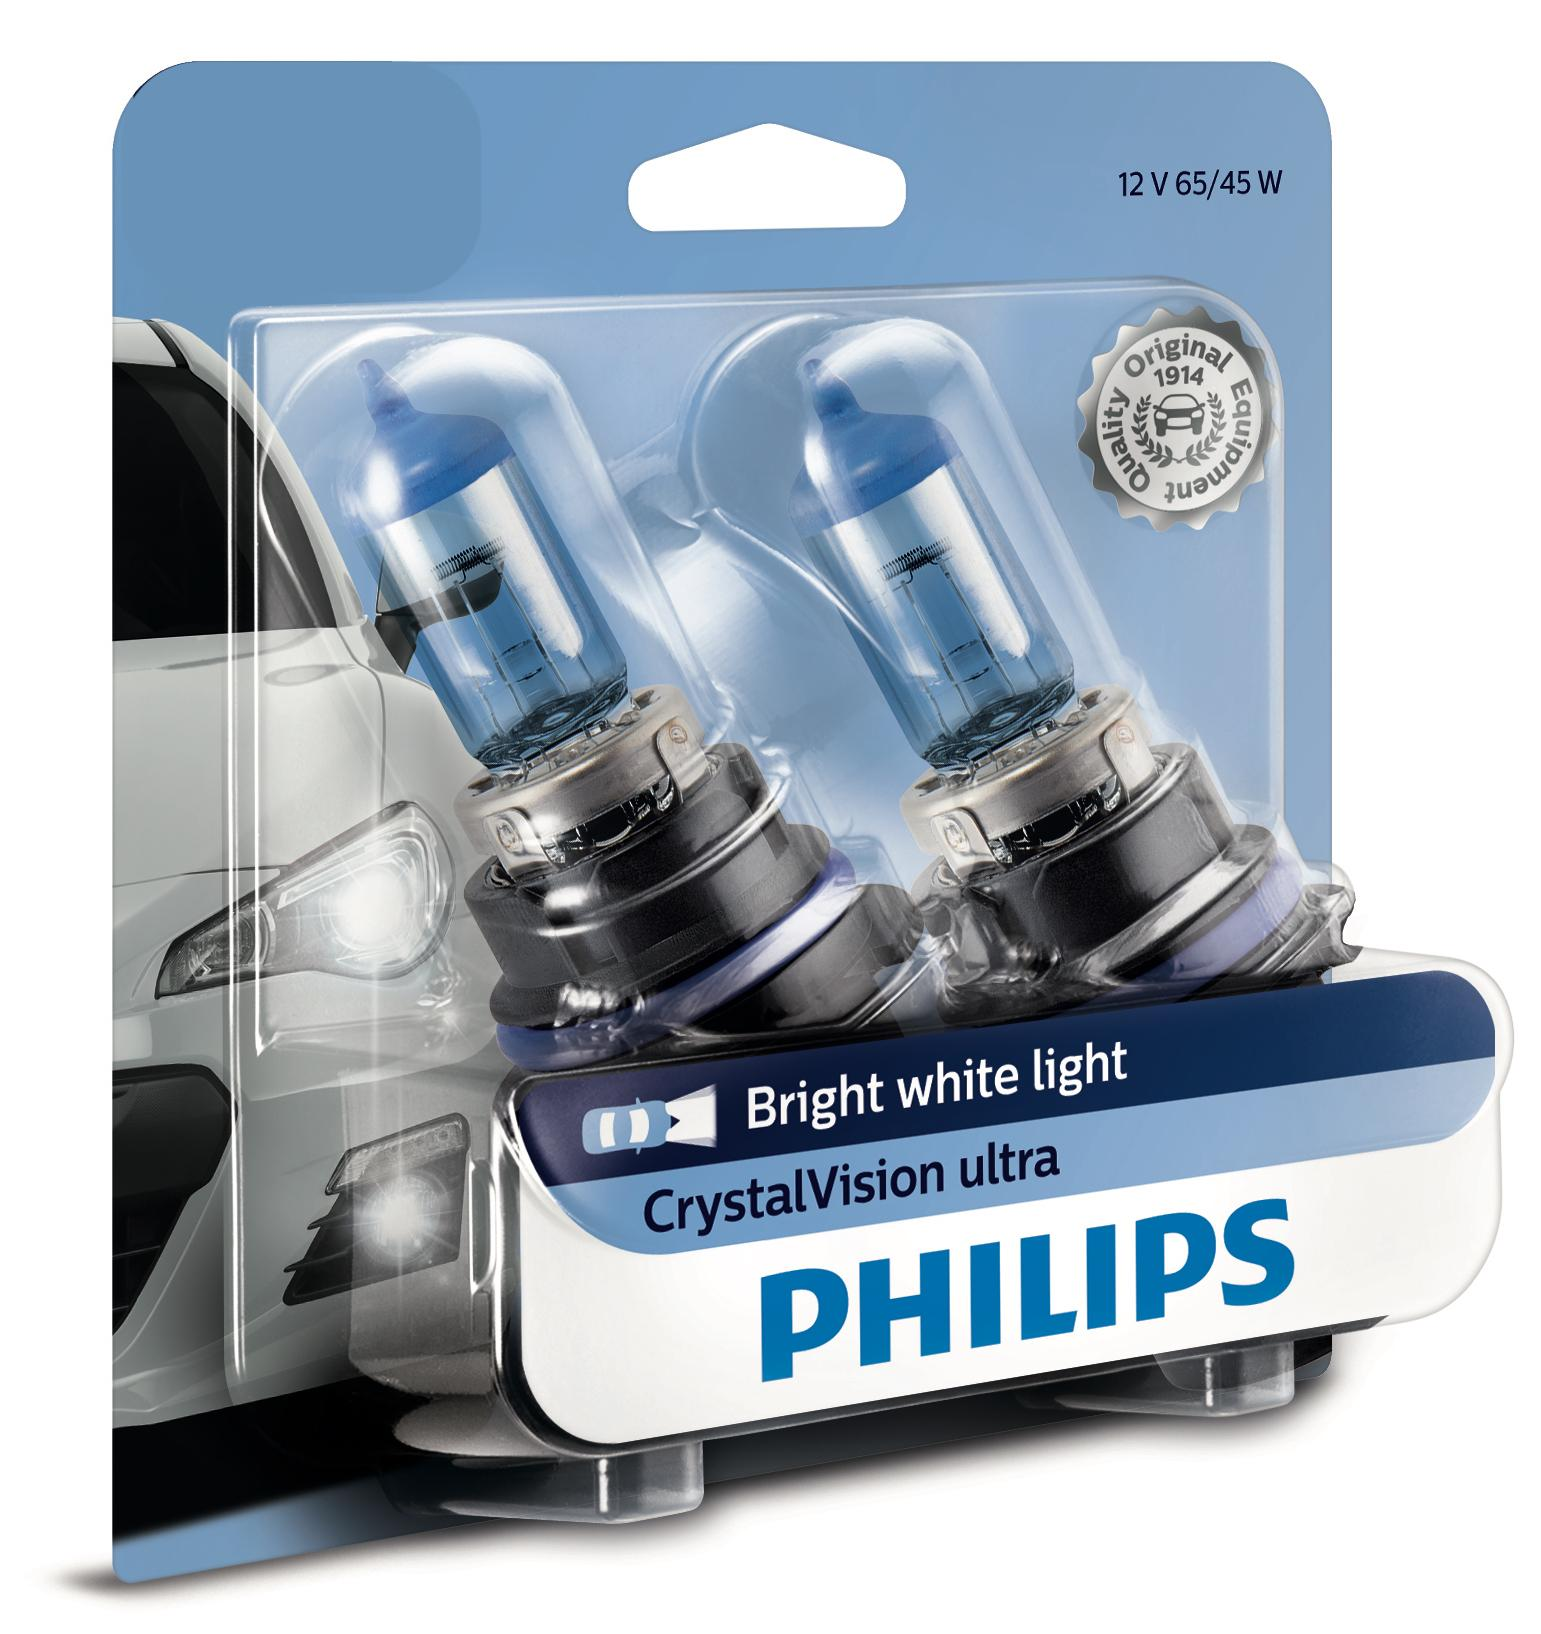 Philips H3 Crystalvision Ultra Upgraded Bright White Fuse Xbox 360 Amazon View Larger